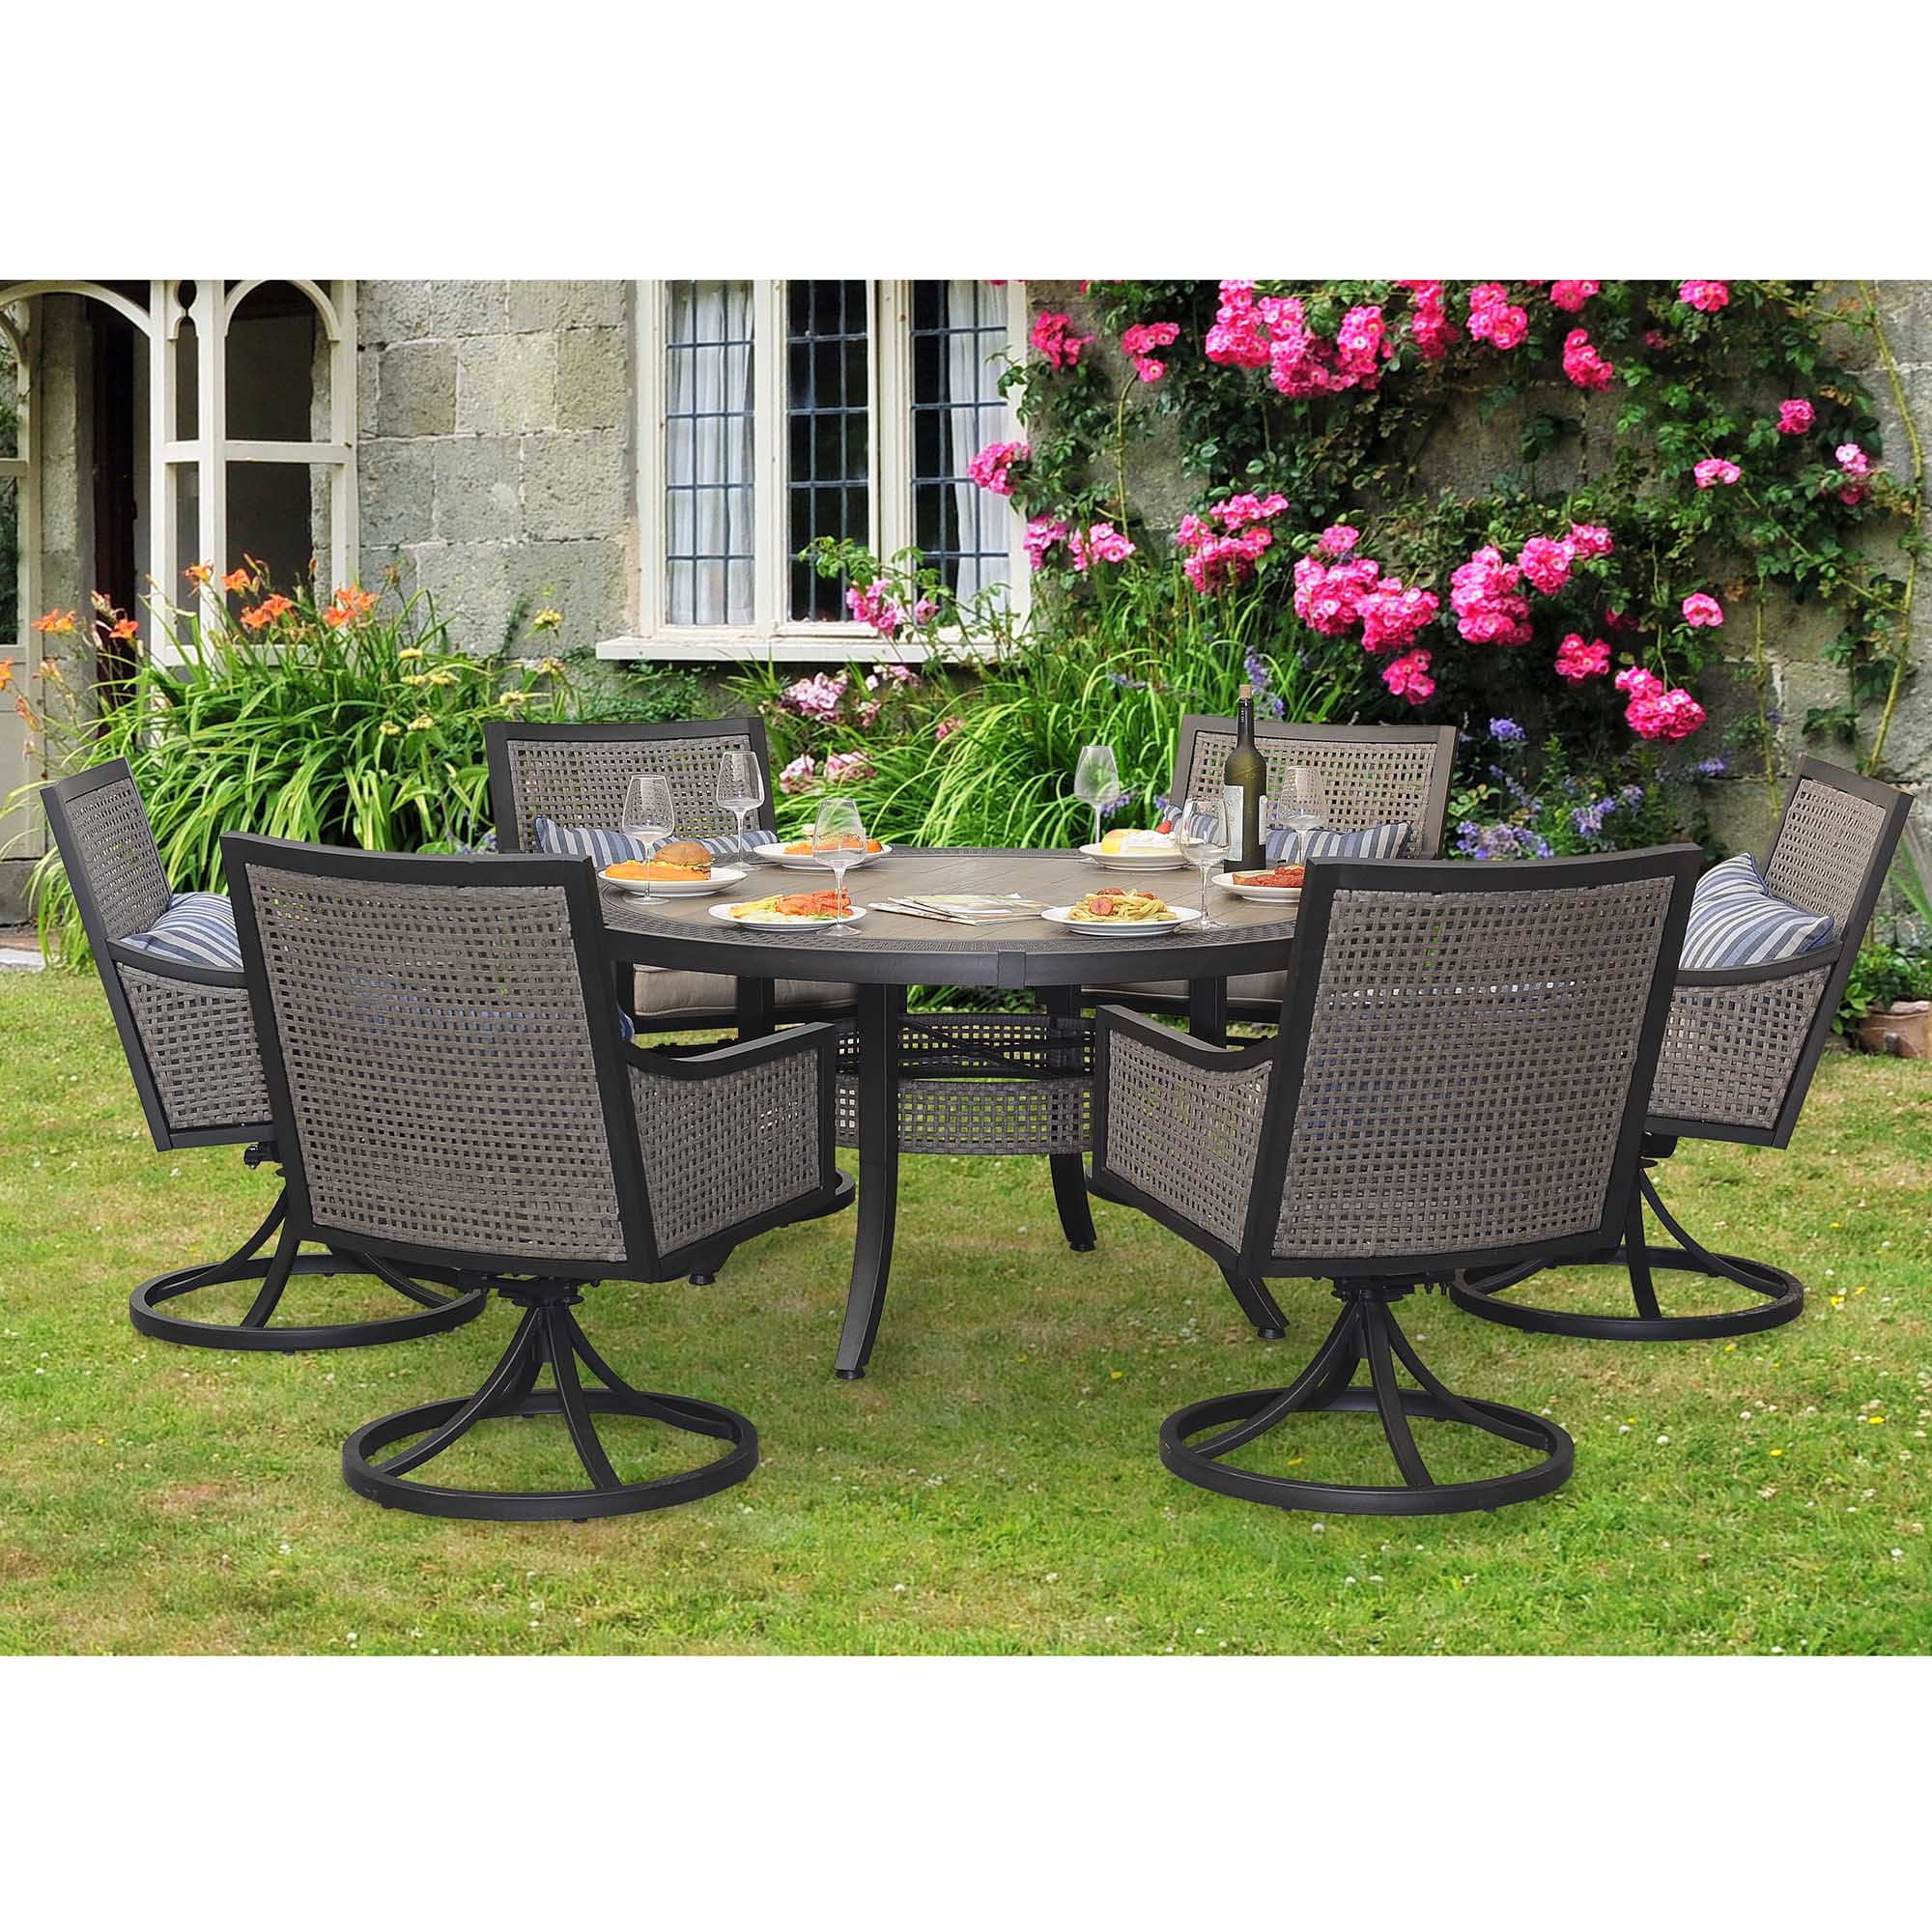 baby chairs to help sit up camping rocking chair sunjoy 7-piece myna patio dining set